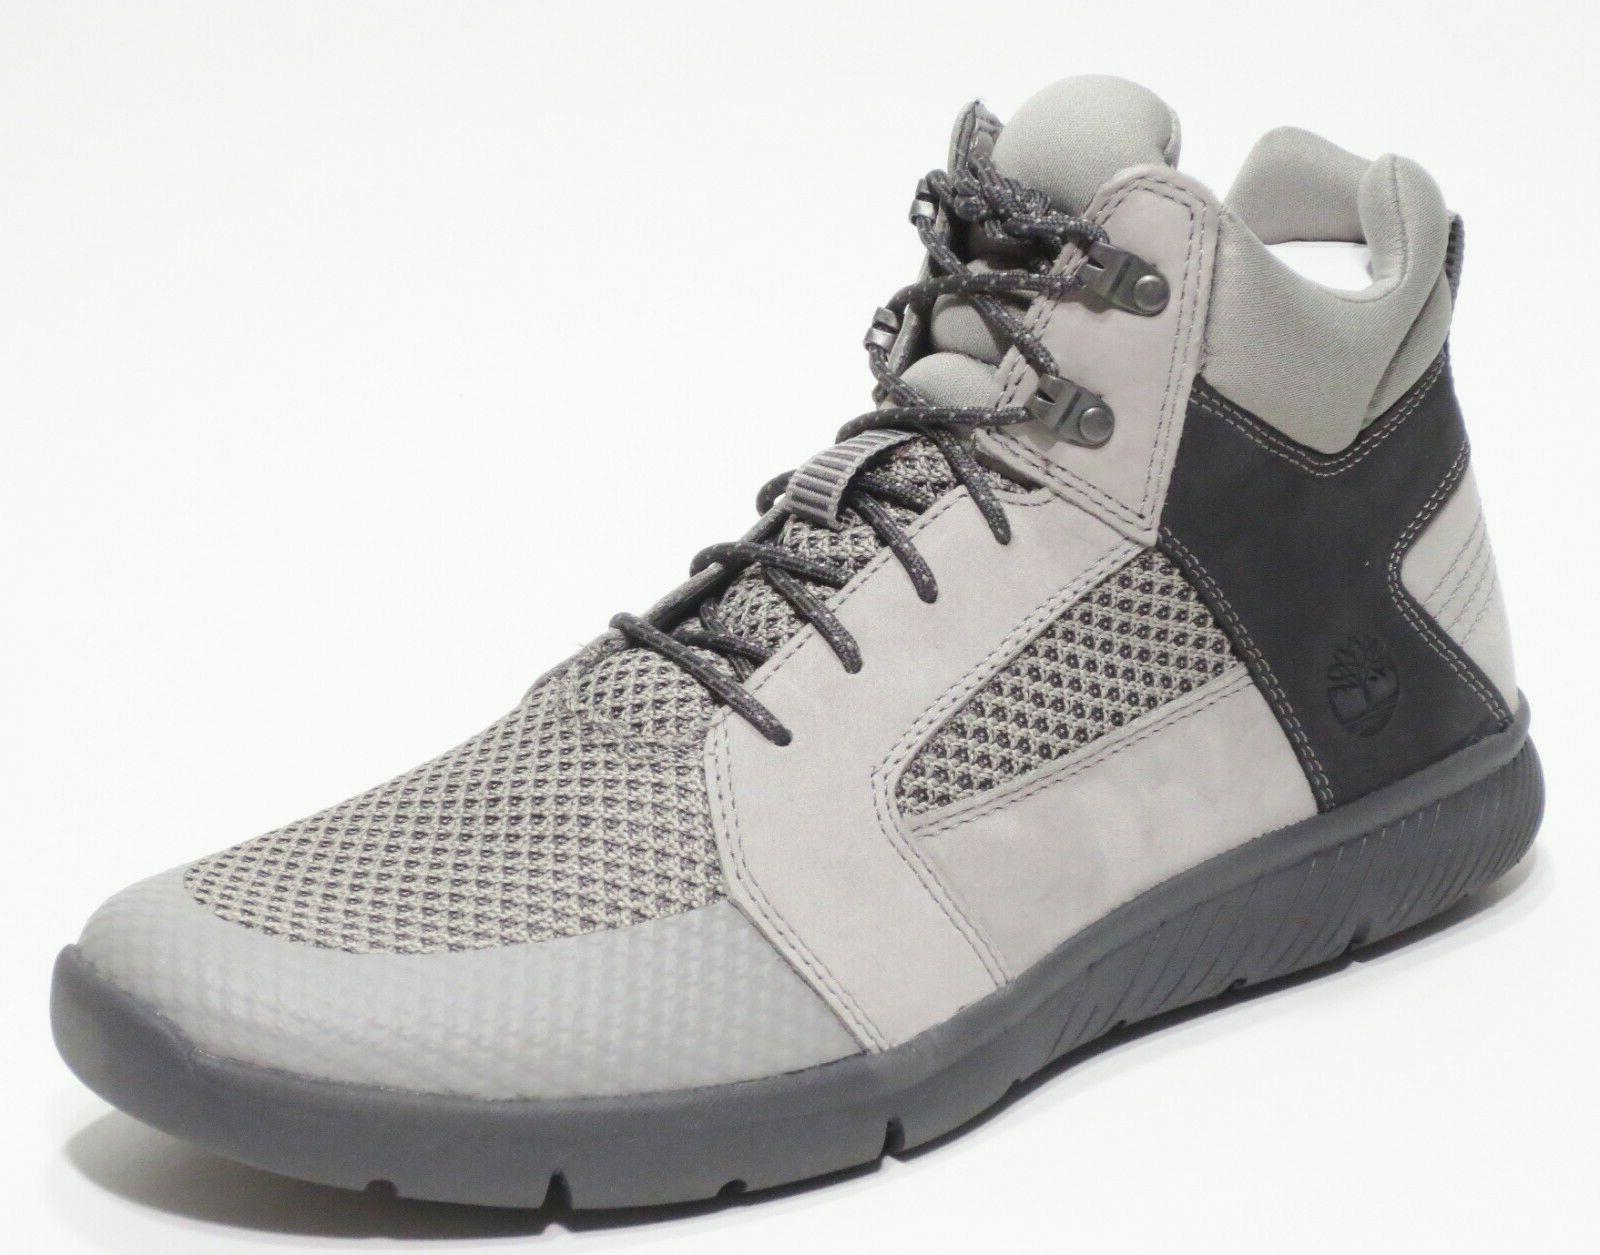 Timberland Men's Boltero Mid Lightweight Shoe Gray or